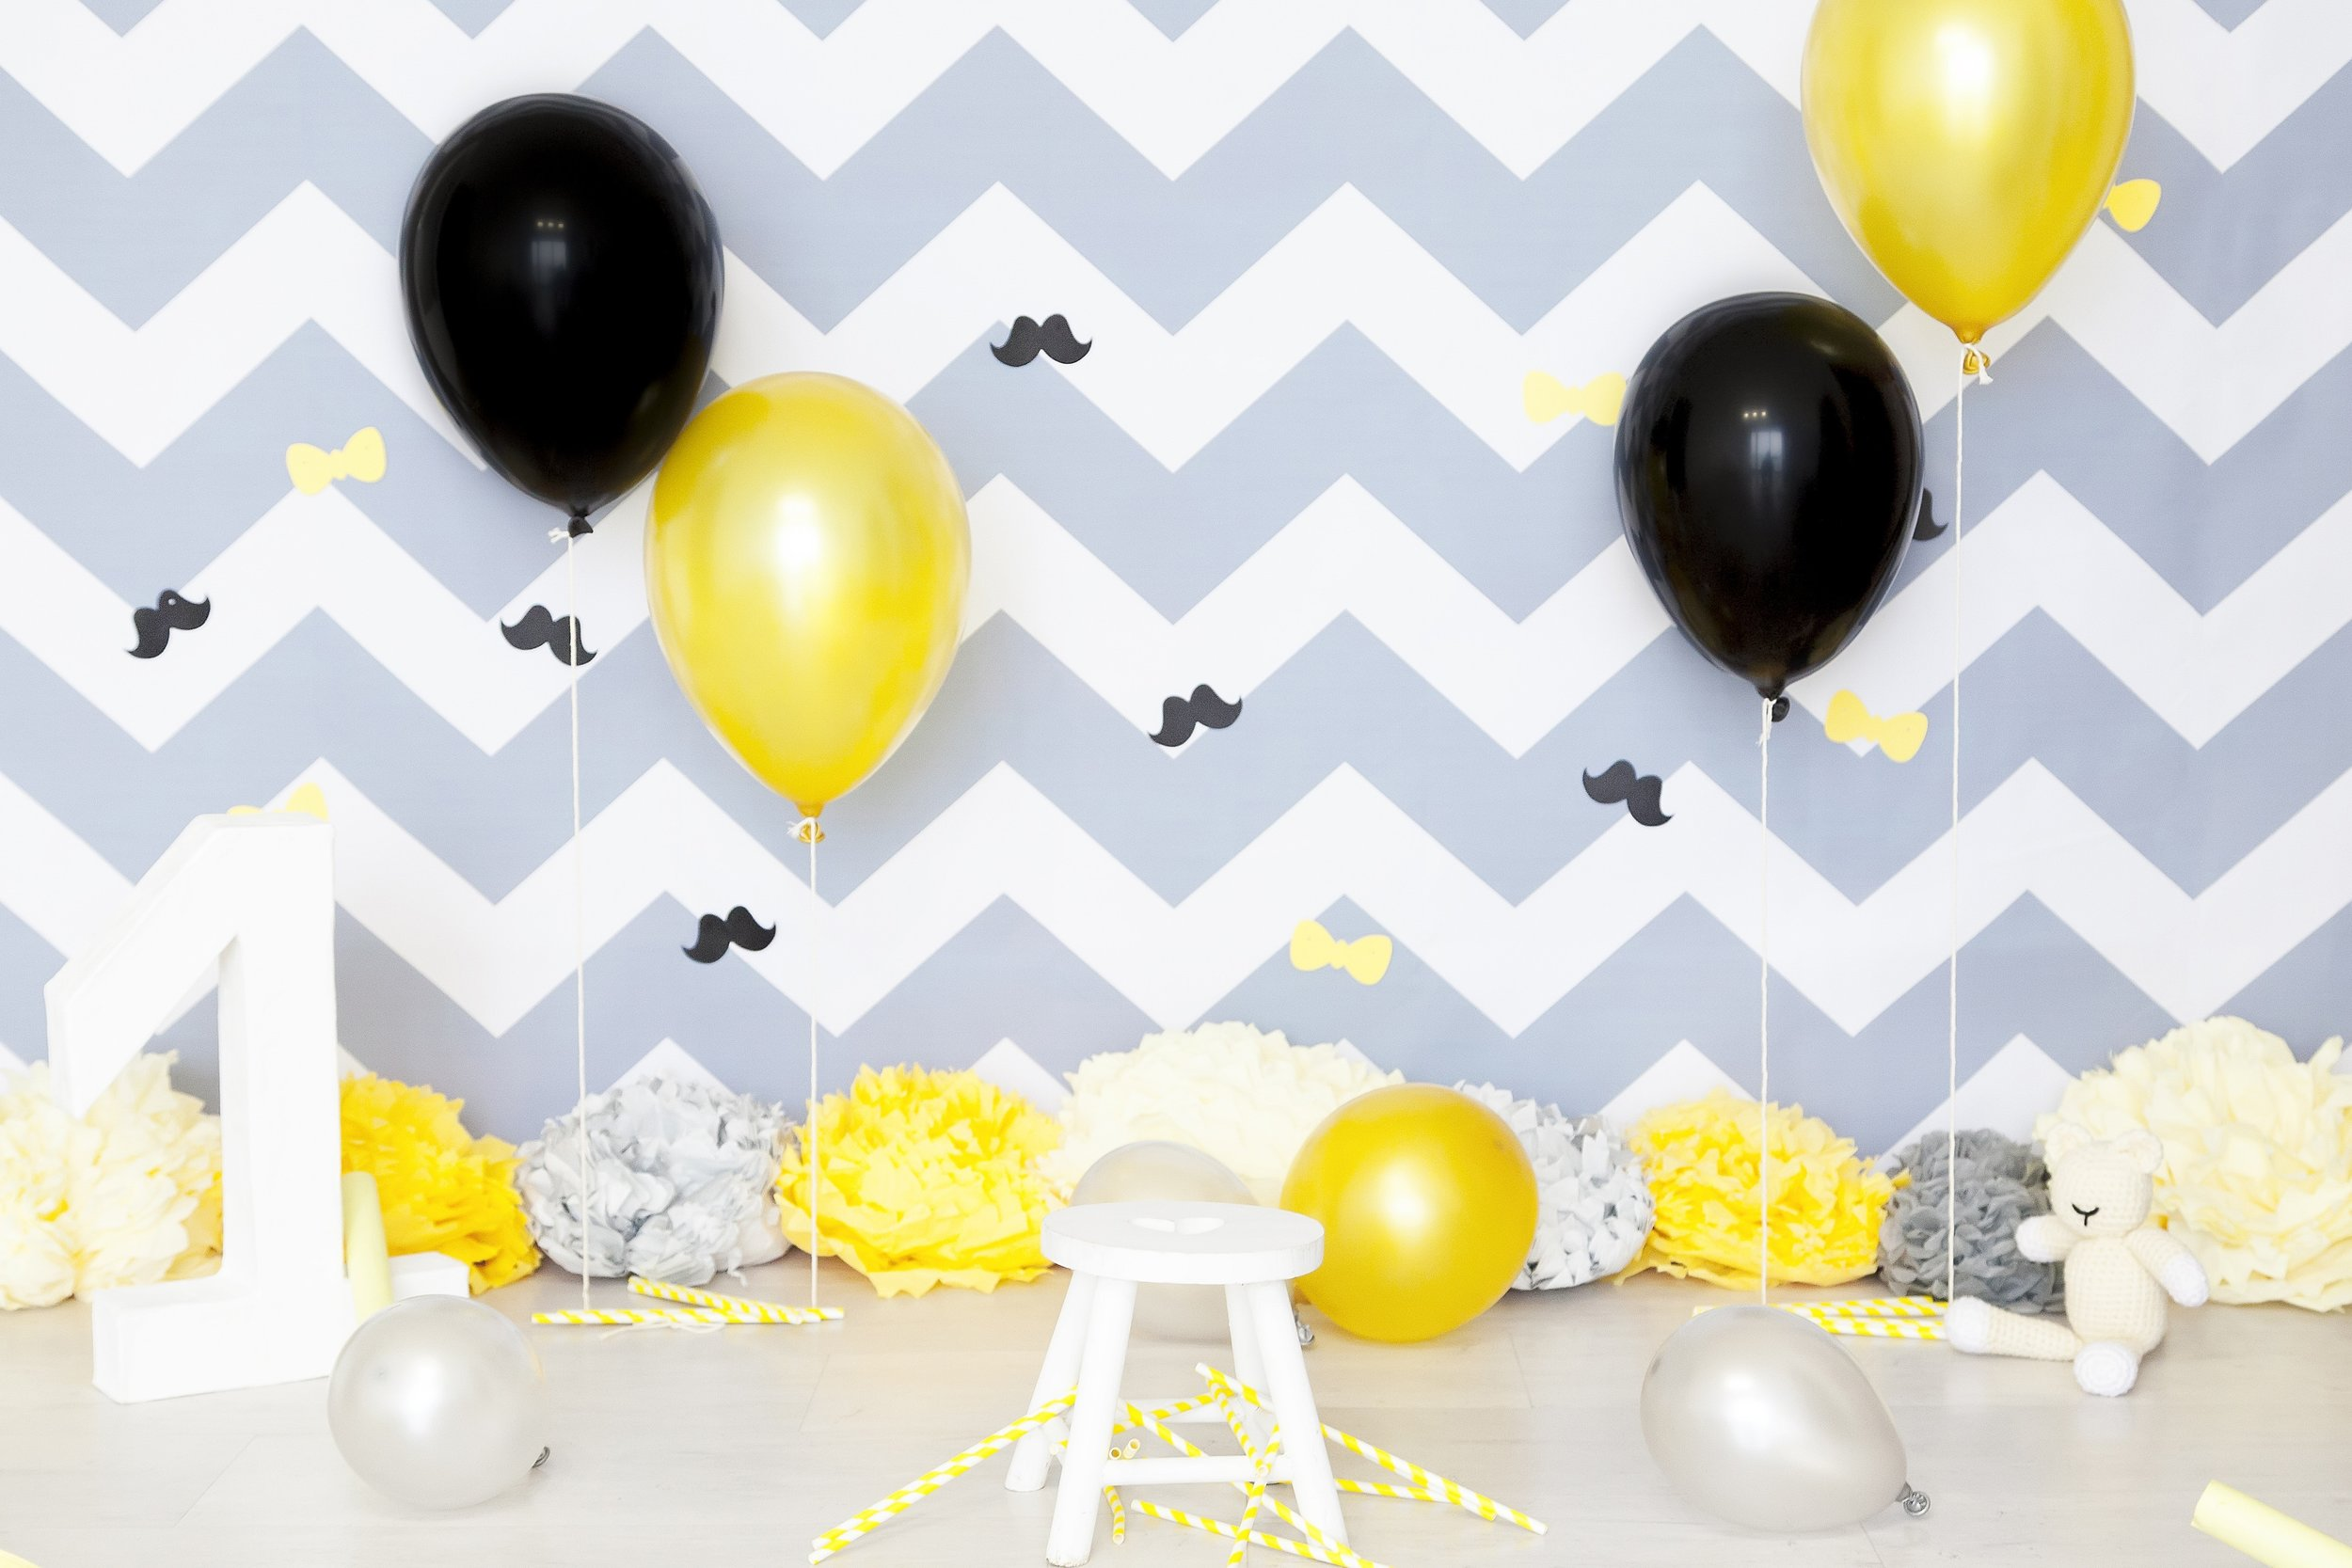 background-balloons-black-414706.jpg